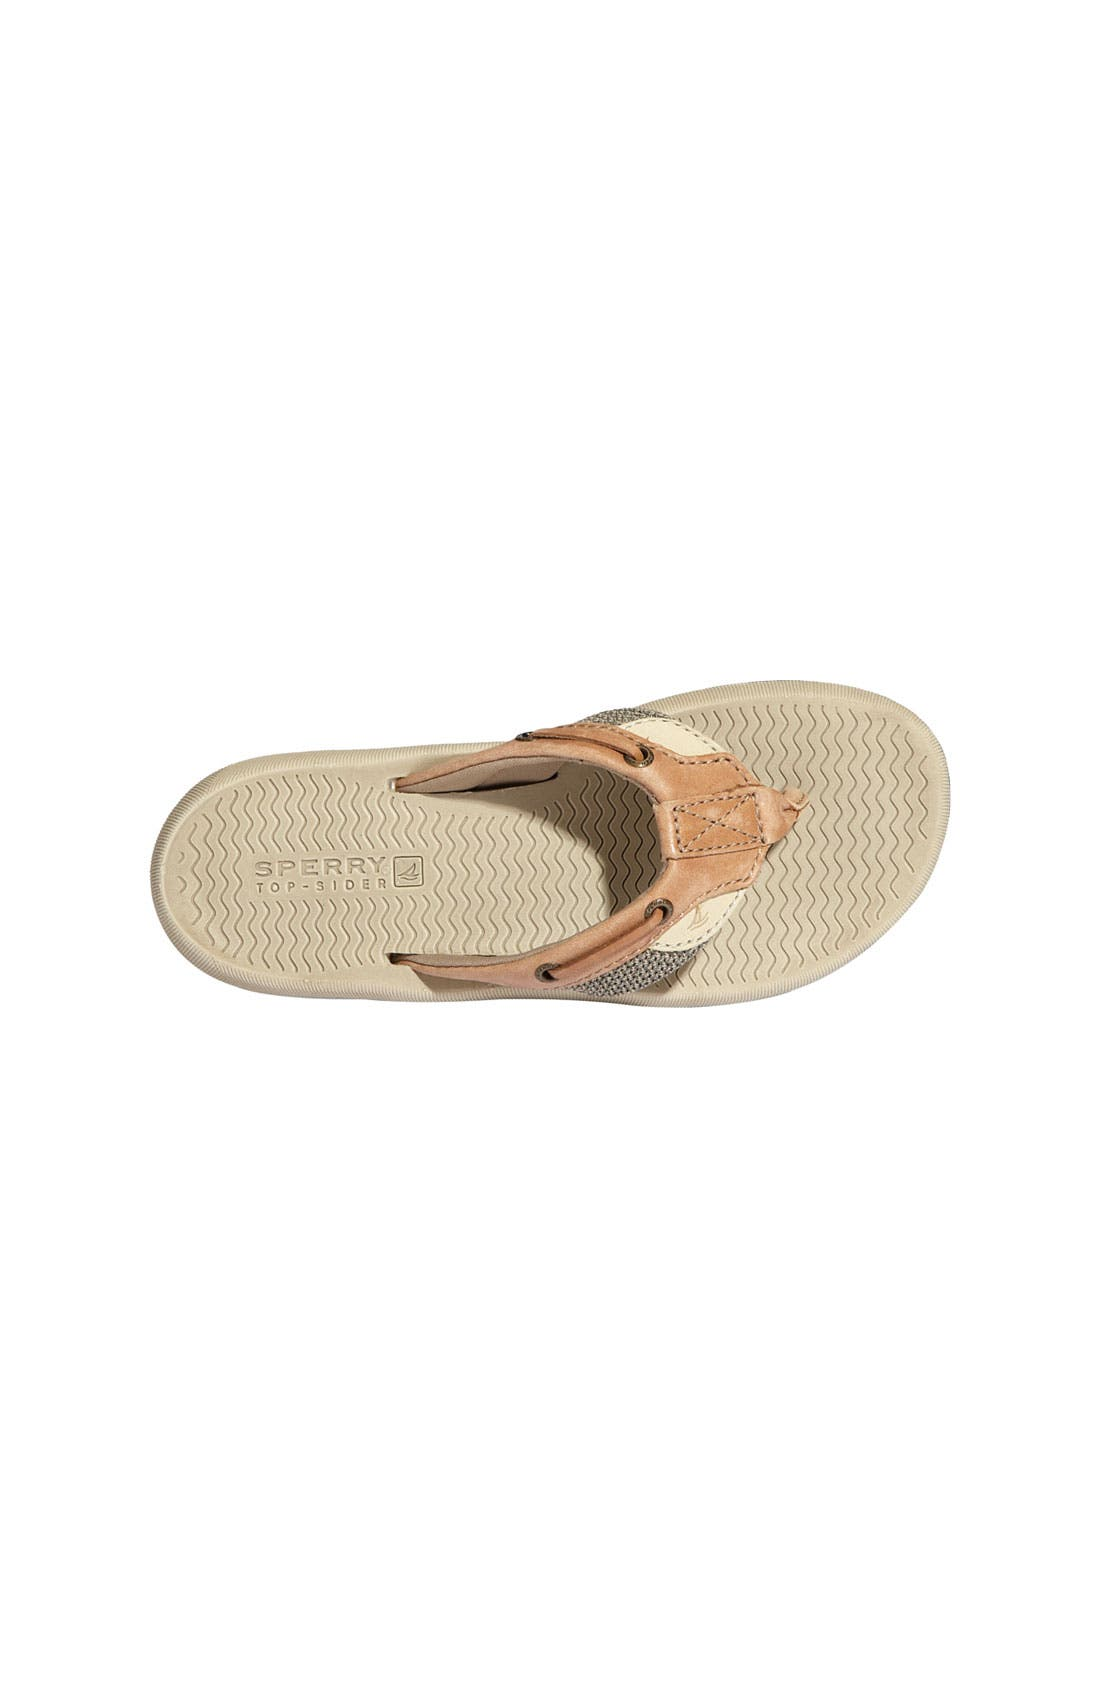 Alternate Image 3  - Sperry Top-Sider® Kids 'Bluefish' Thong Sandal (Little Kid & Big Kid)